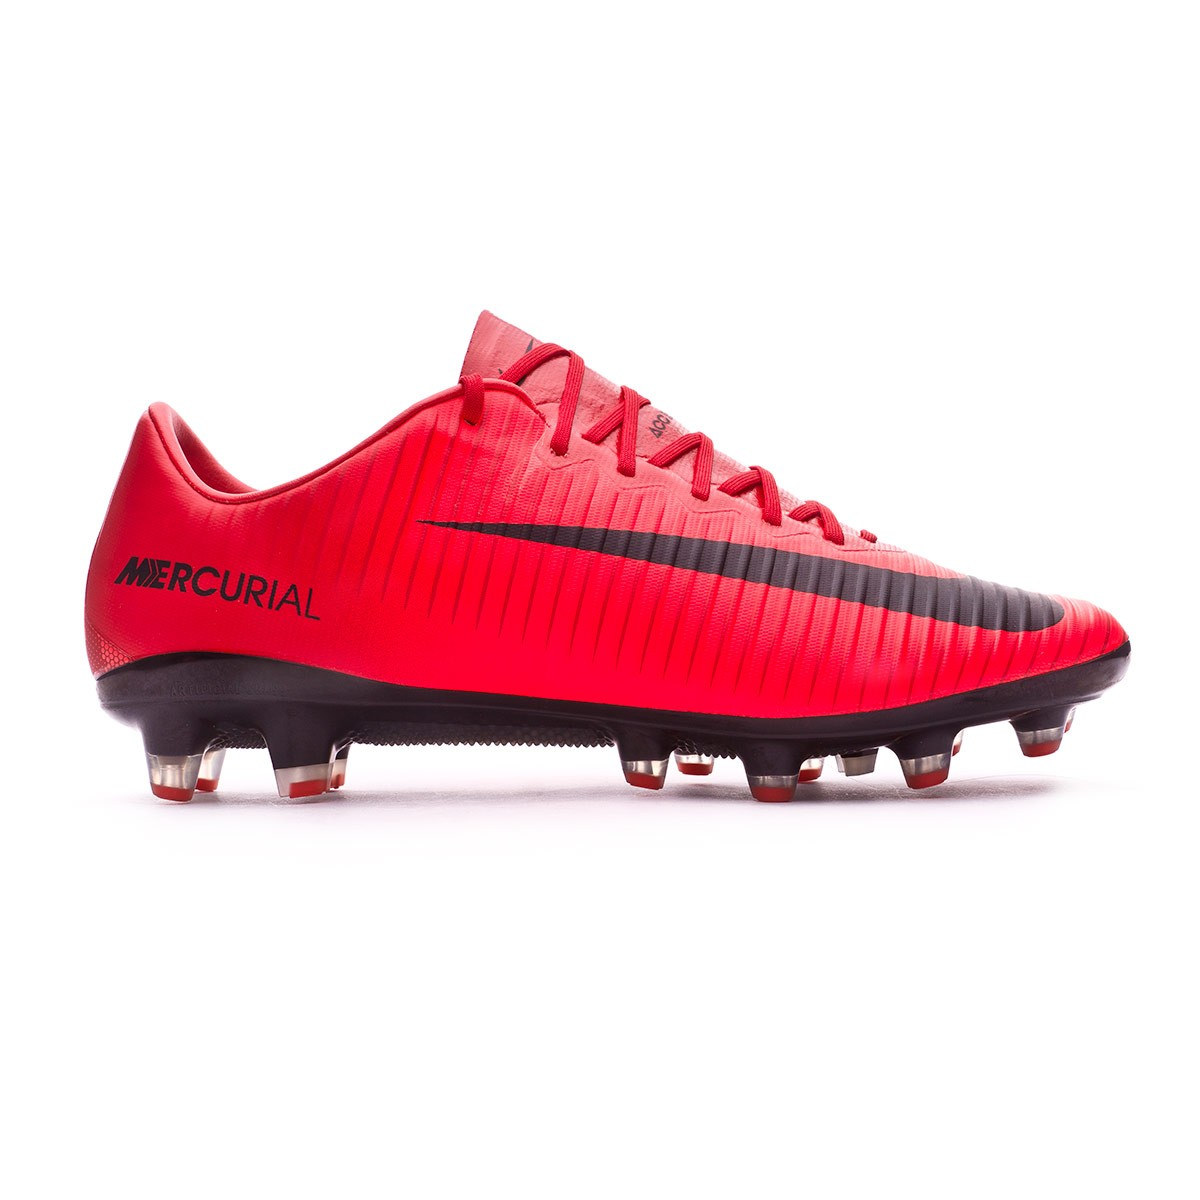 ... Bota Mercurial Vapor XI ACC AG-Pro University red-Bright crimson-Black.  Vídeo c4da72db8892a